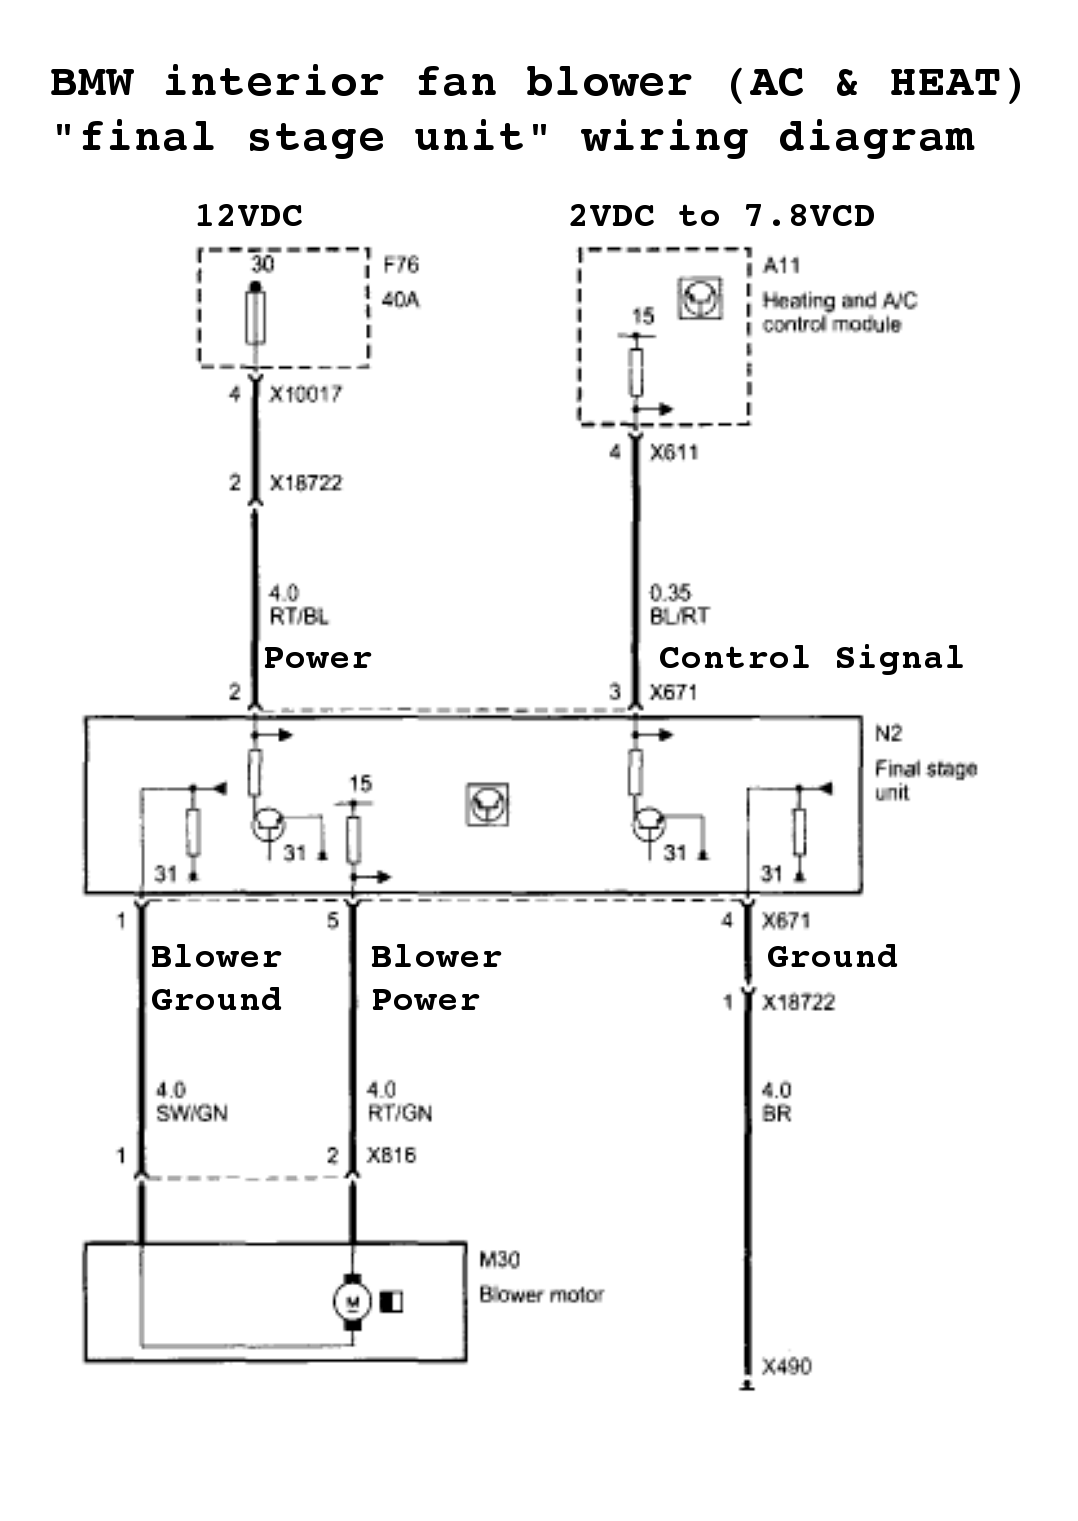 blower motor resistor wiring diagram 1992 buick roadmaster blower motor resistor wiring root cause insight into the common bmw blower motor ... #5